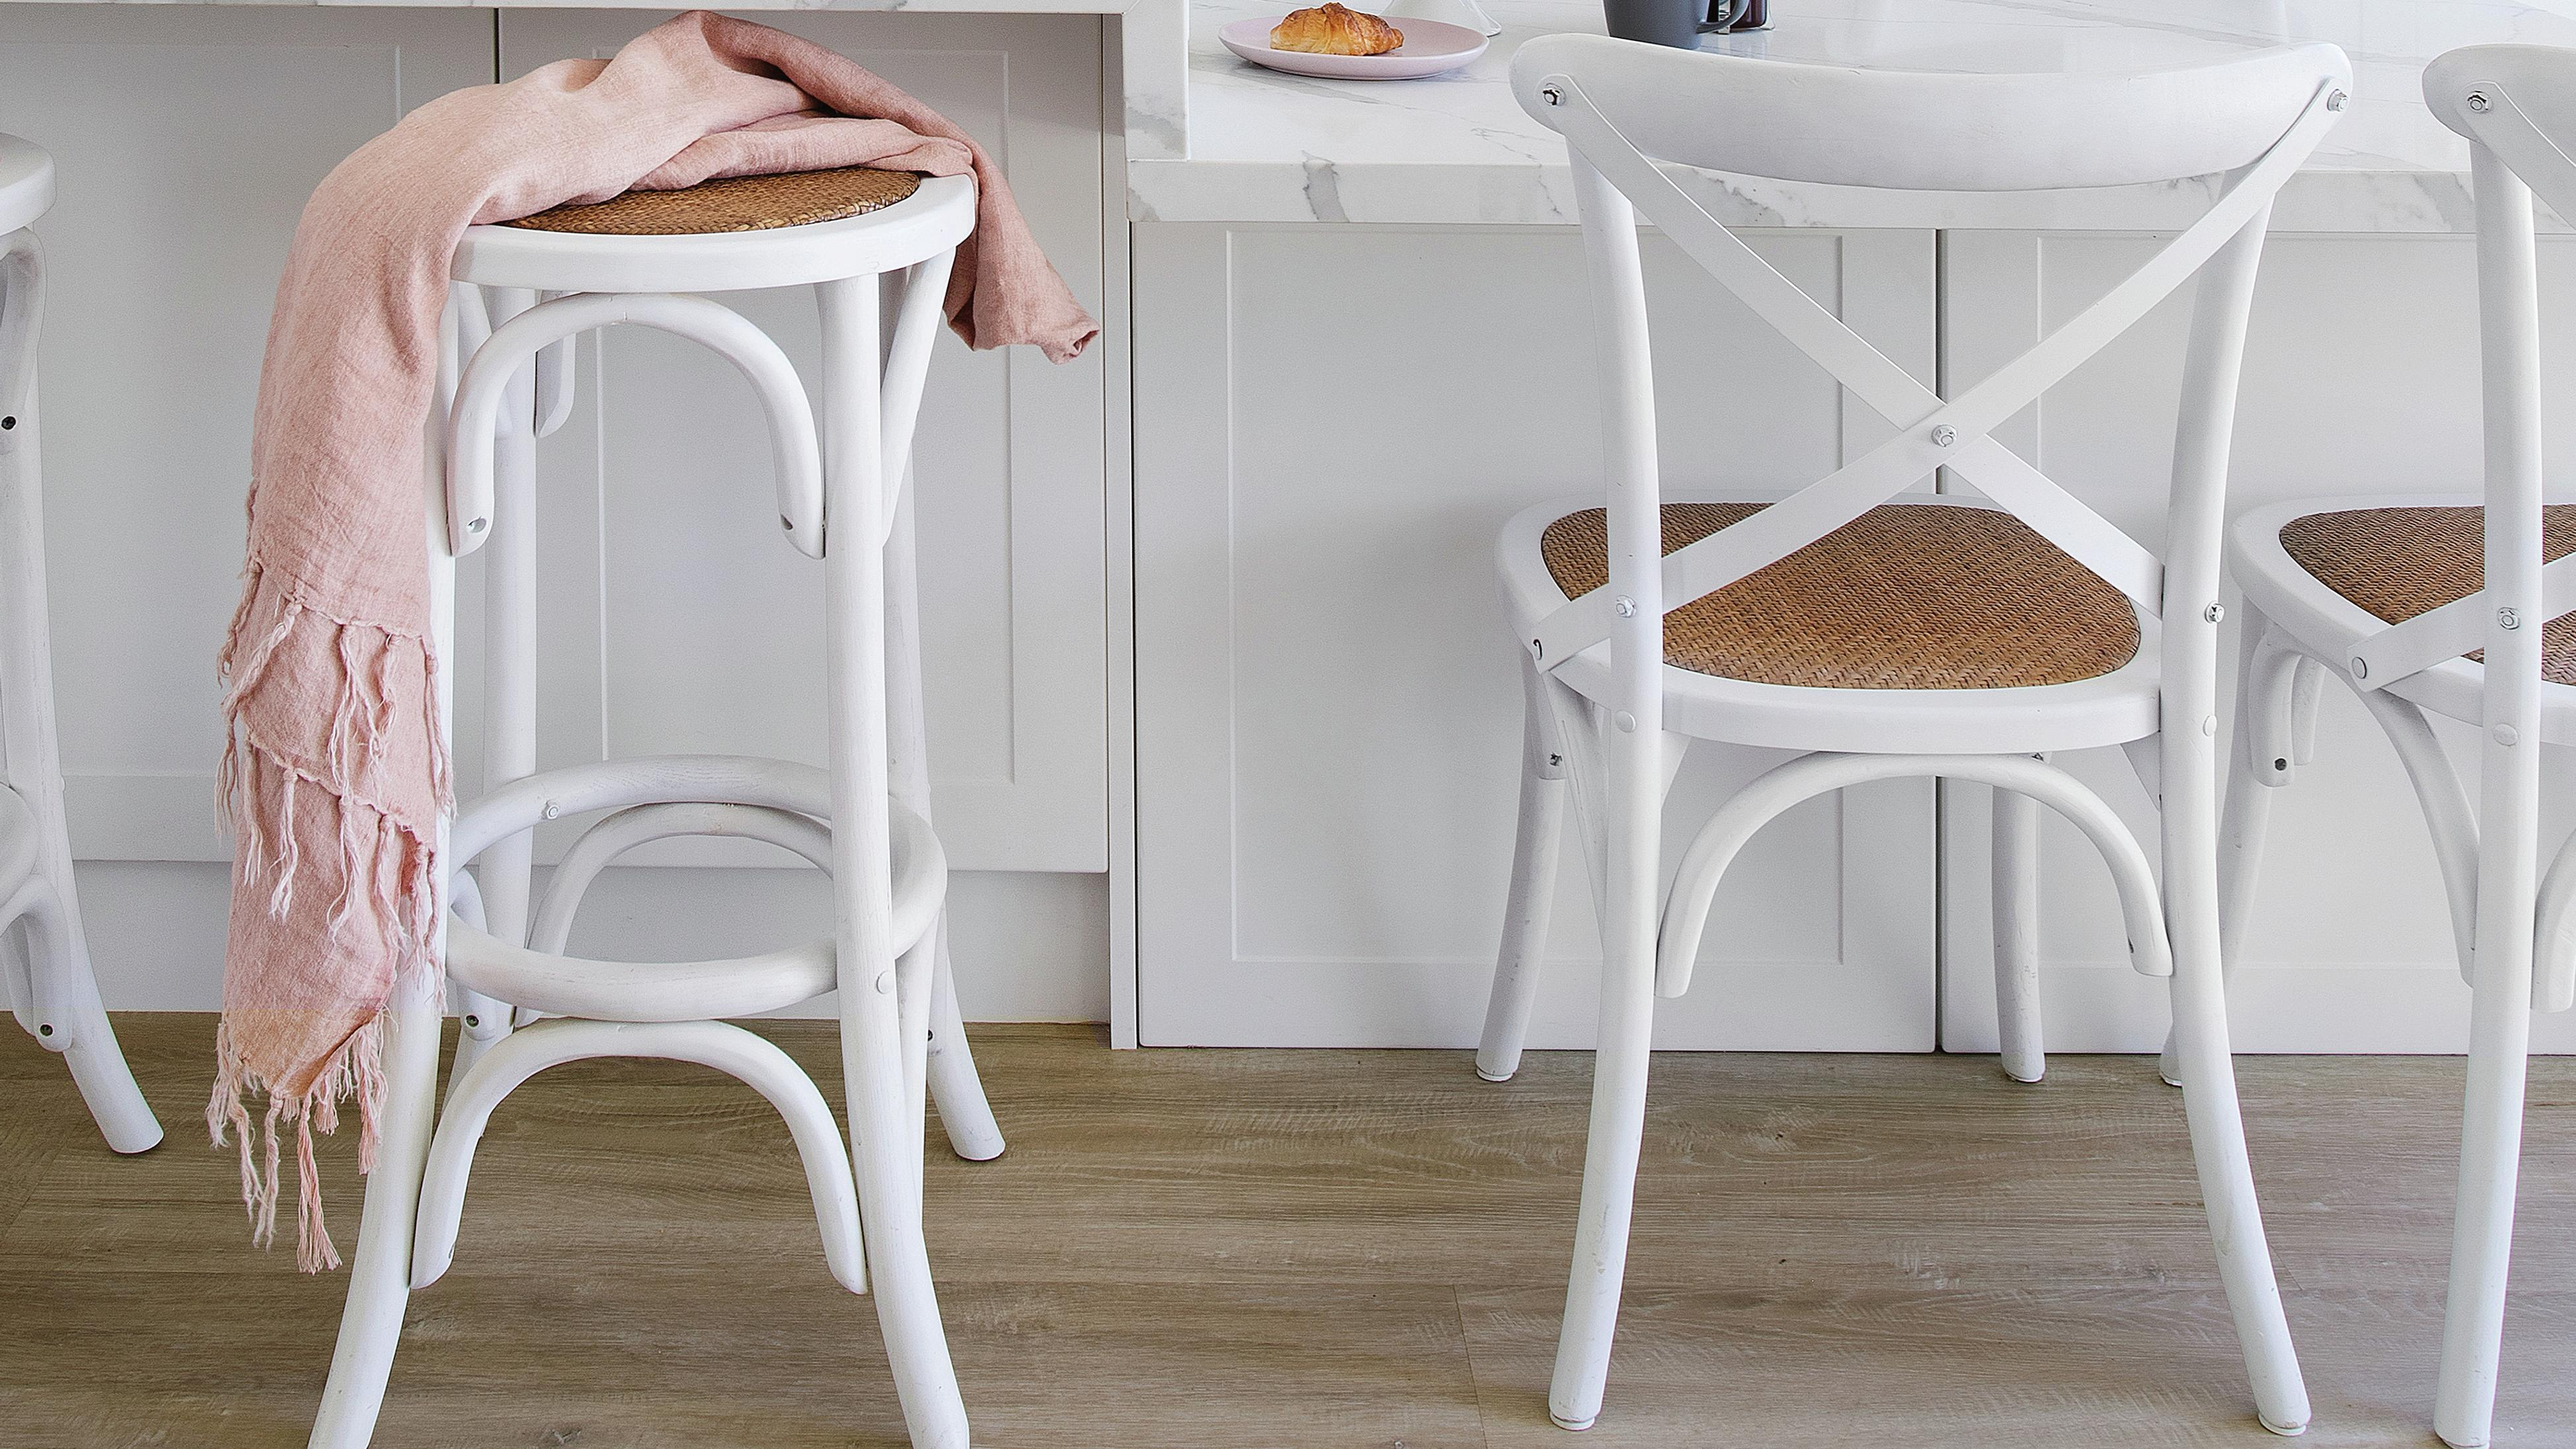 White bar stools and a pale pink scarf draped over a stool.